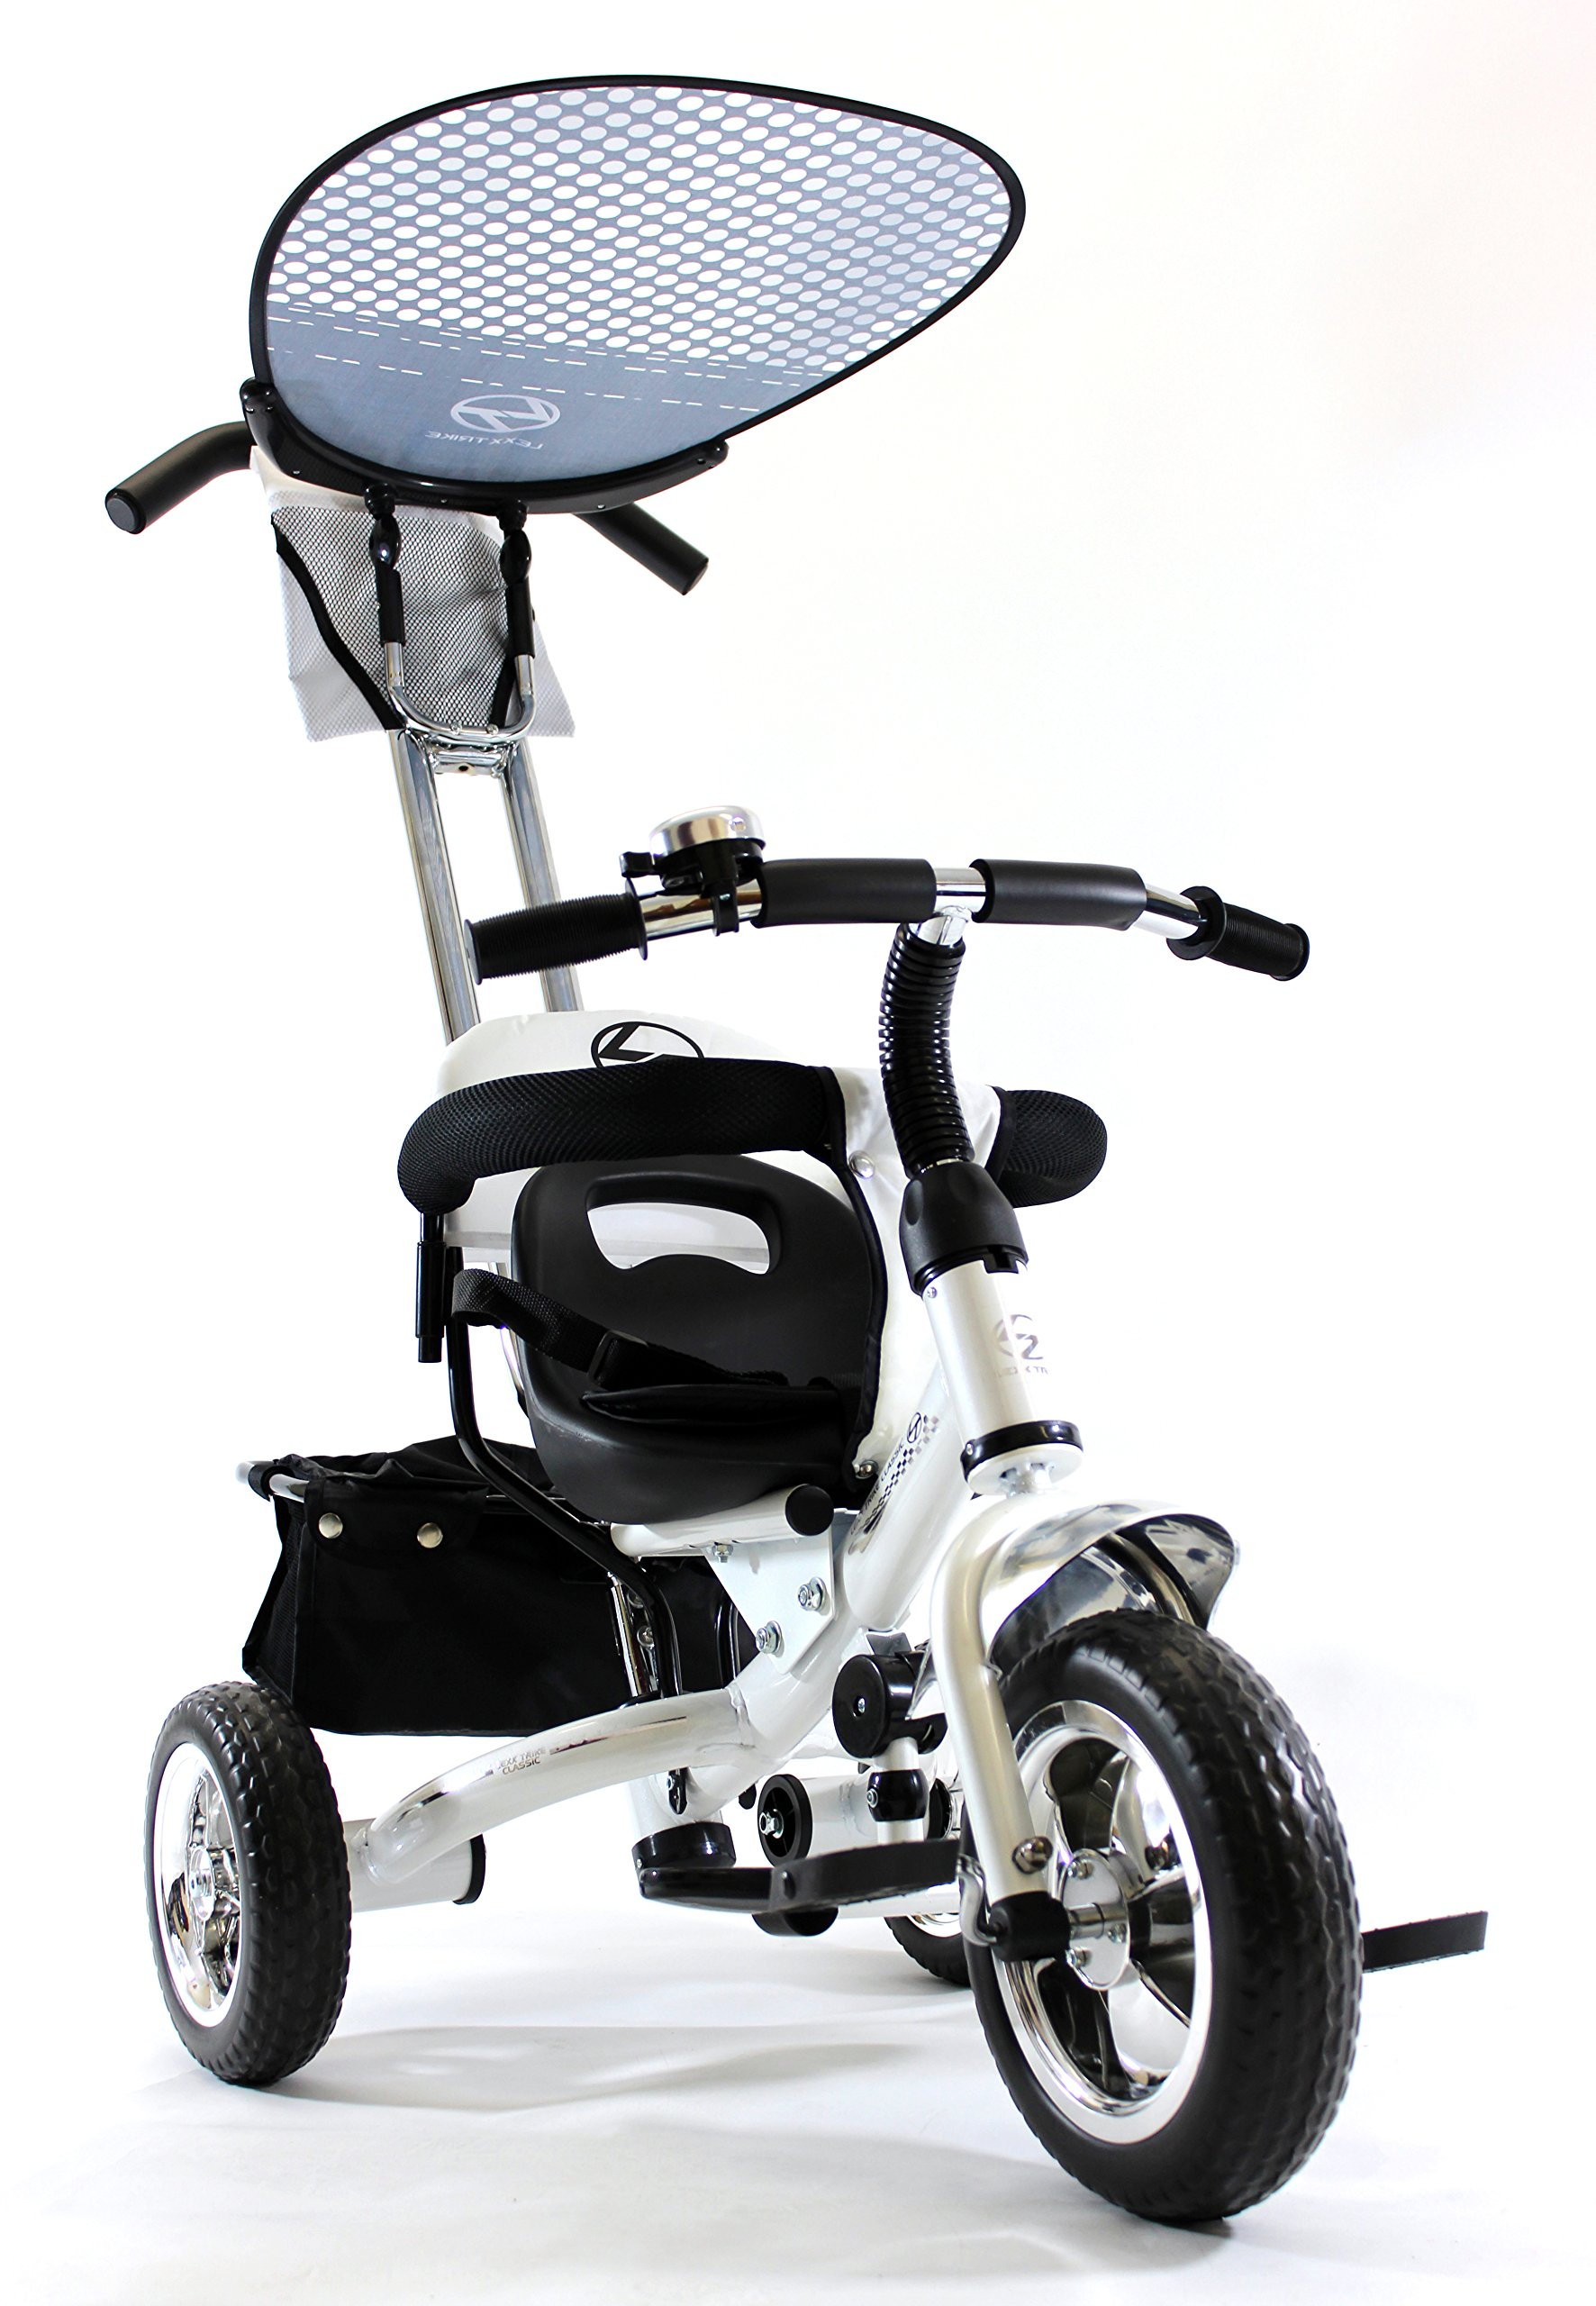 Lexx Trike 4in1 Classic Smart Kid's Tricycle 3 Wheel Bike Removable Handle & Canopy NEW WHITE by Lexx Trike